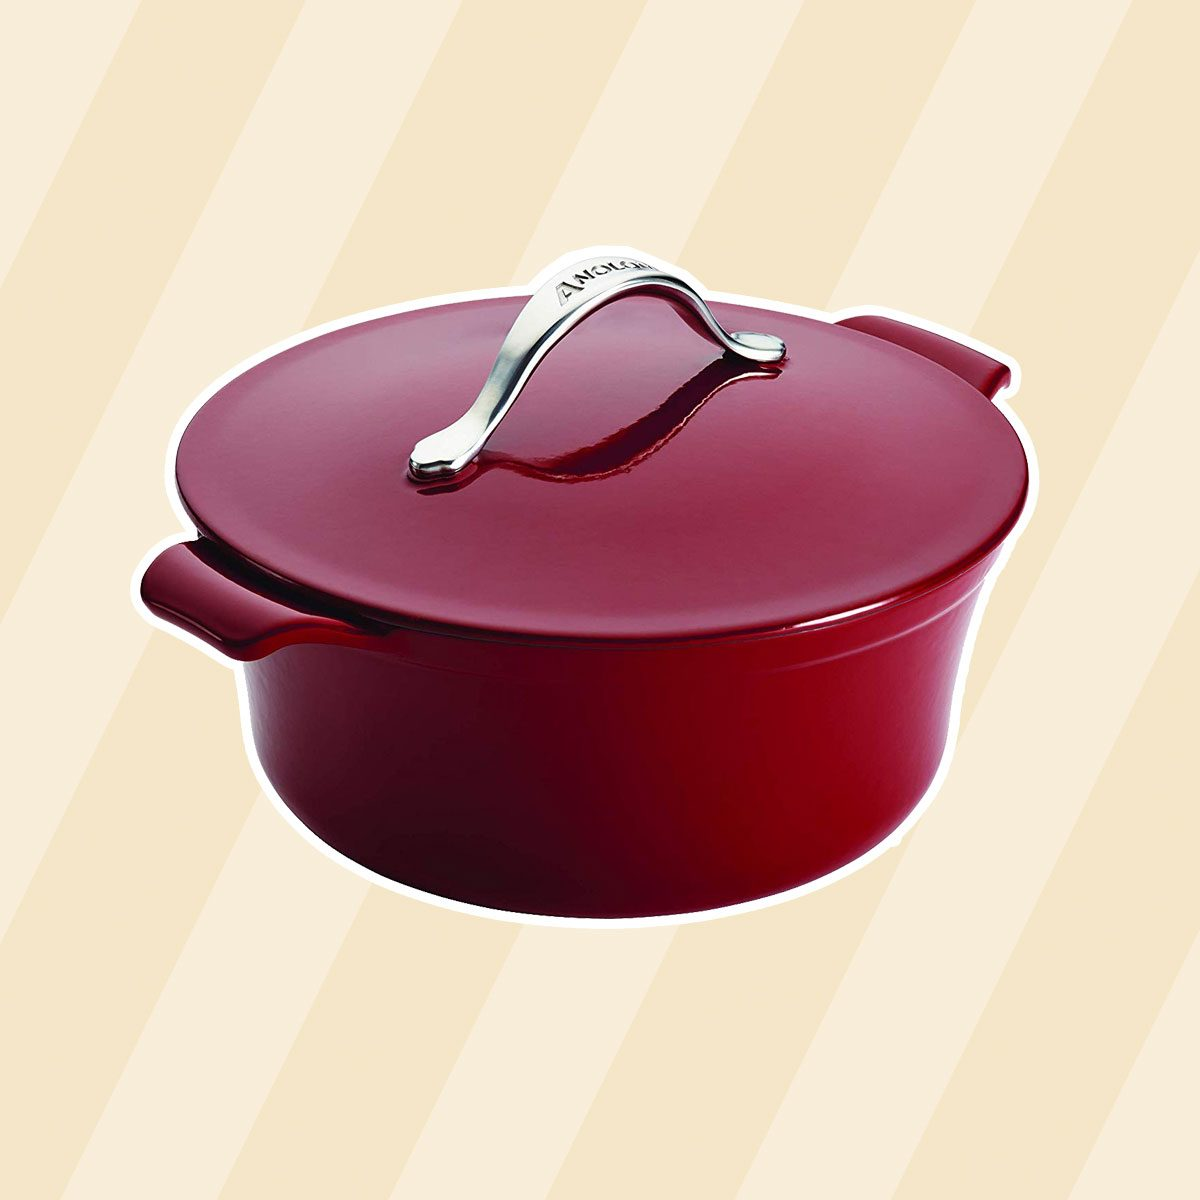 Anolon Vesta Cast Iron Cookware 5-Quart Round Covered Dutch Oven, Paprika Red